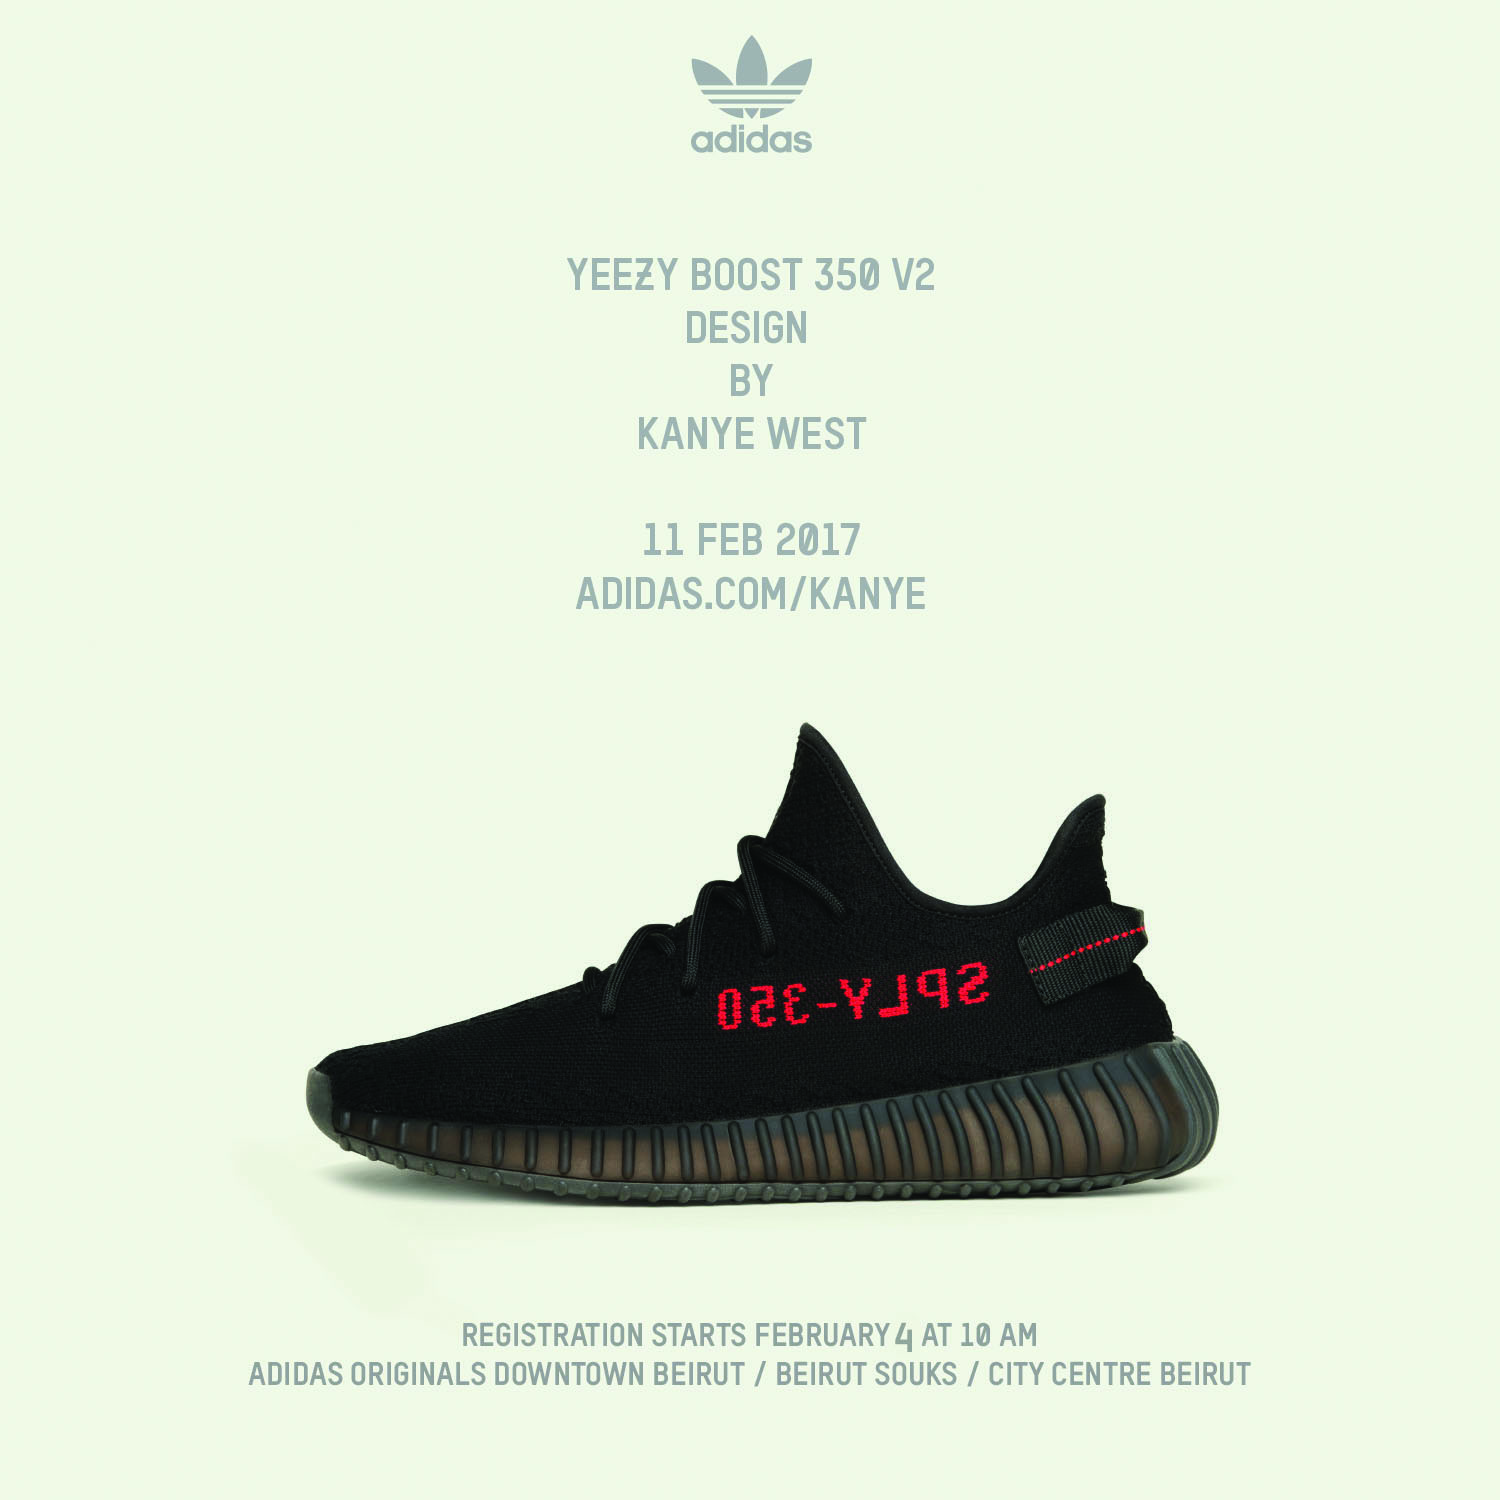 KANYE WEST and adidas announce the YEEZY BOOST 350 V2 Core Black / Red